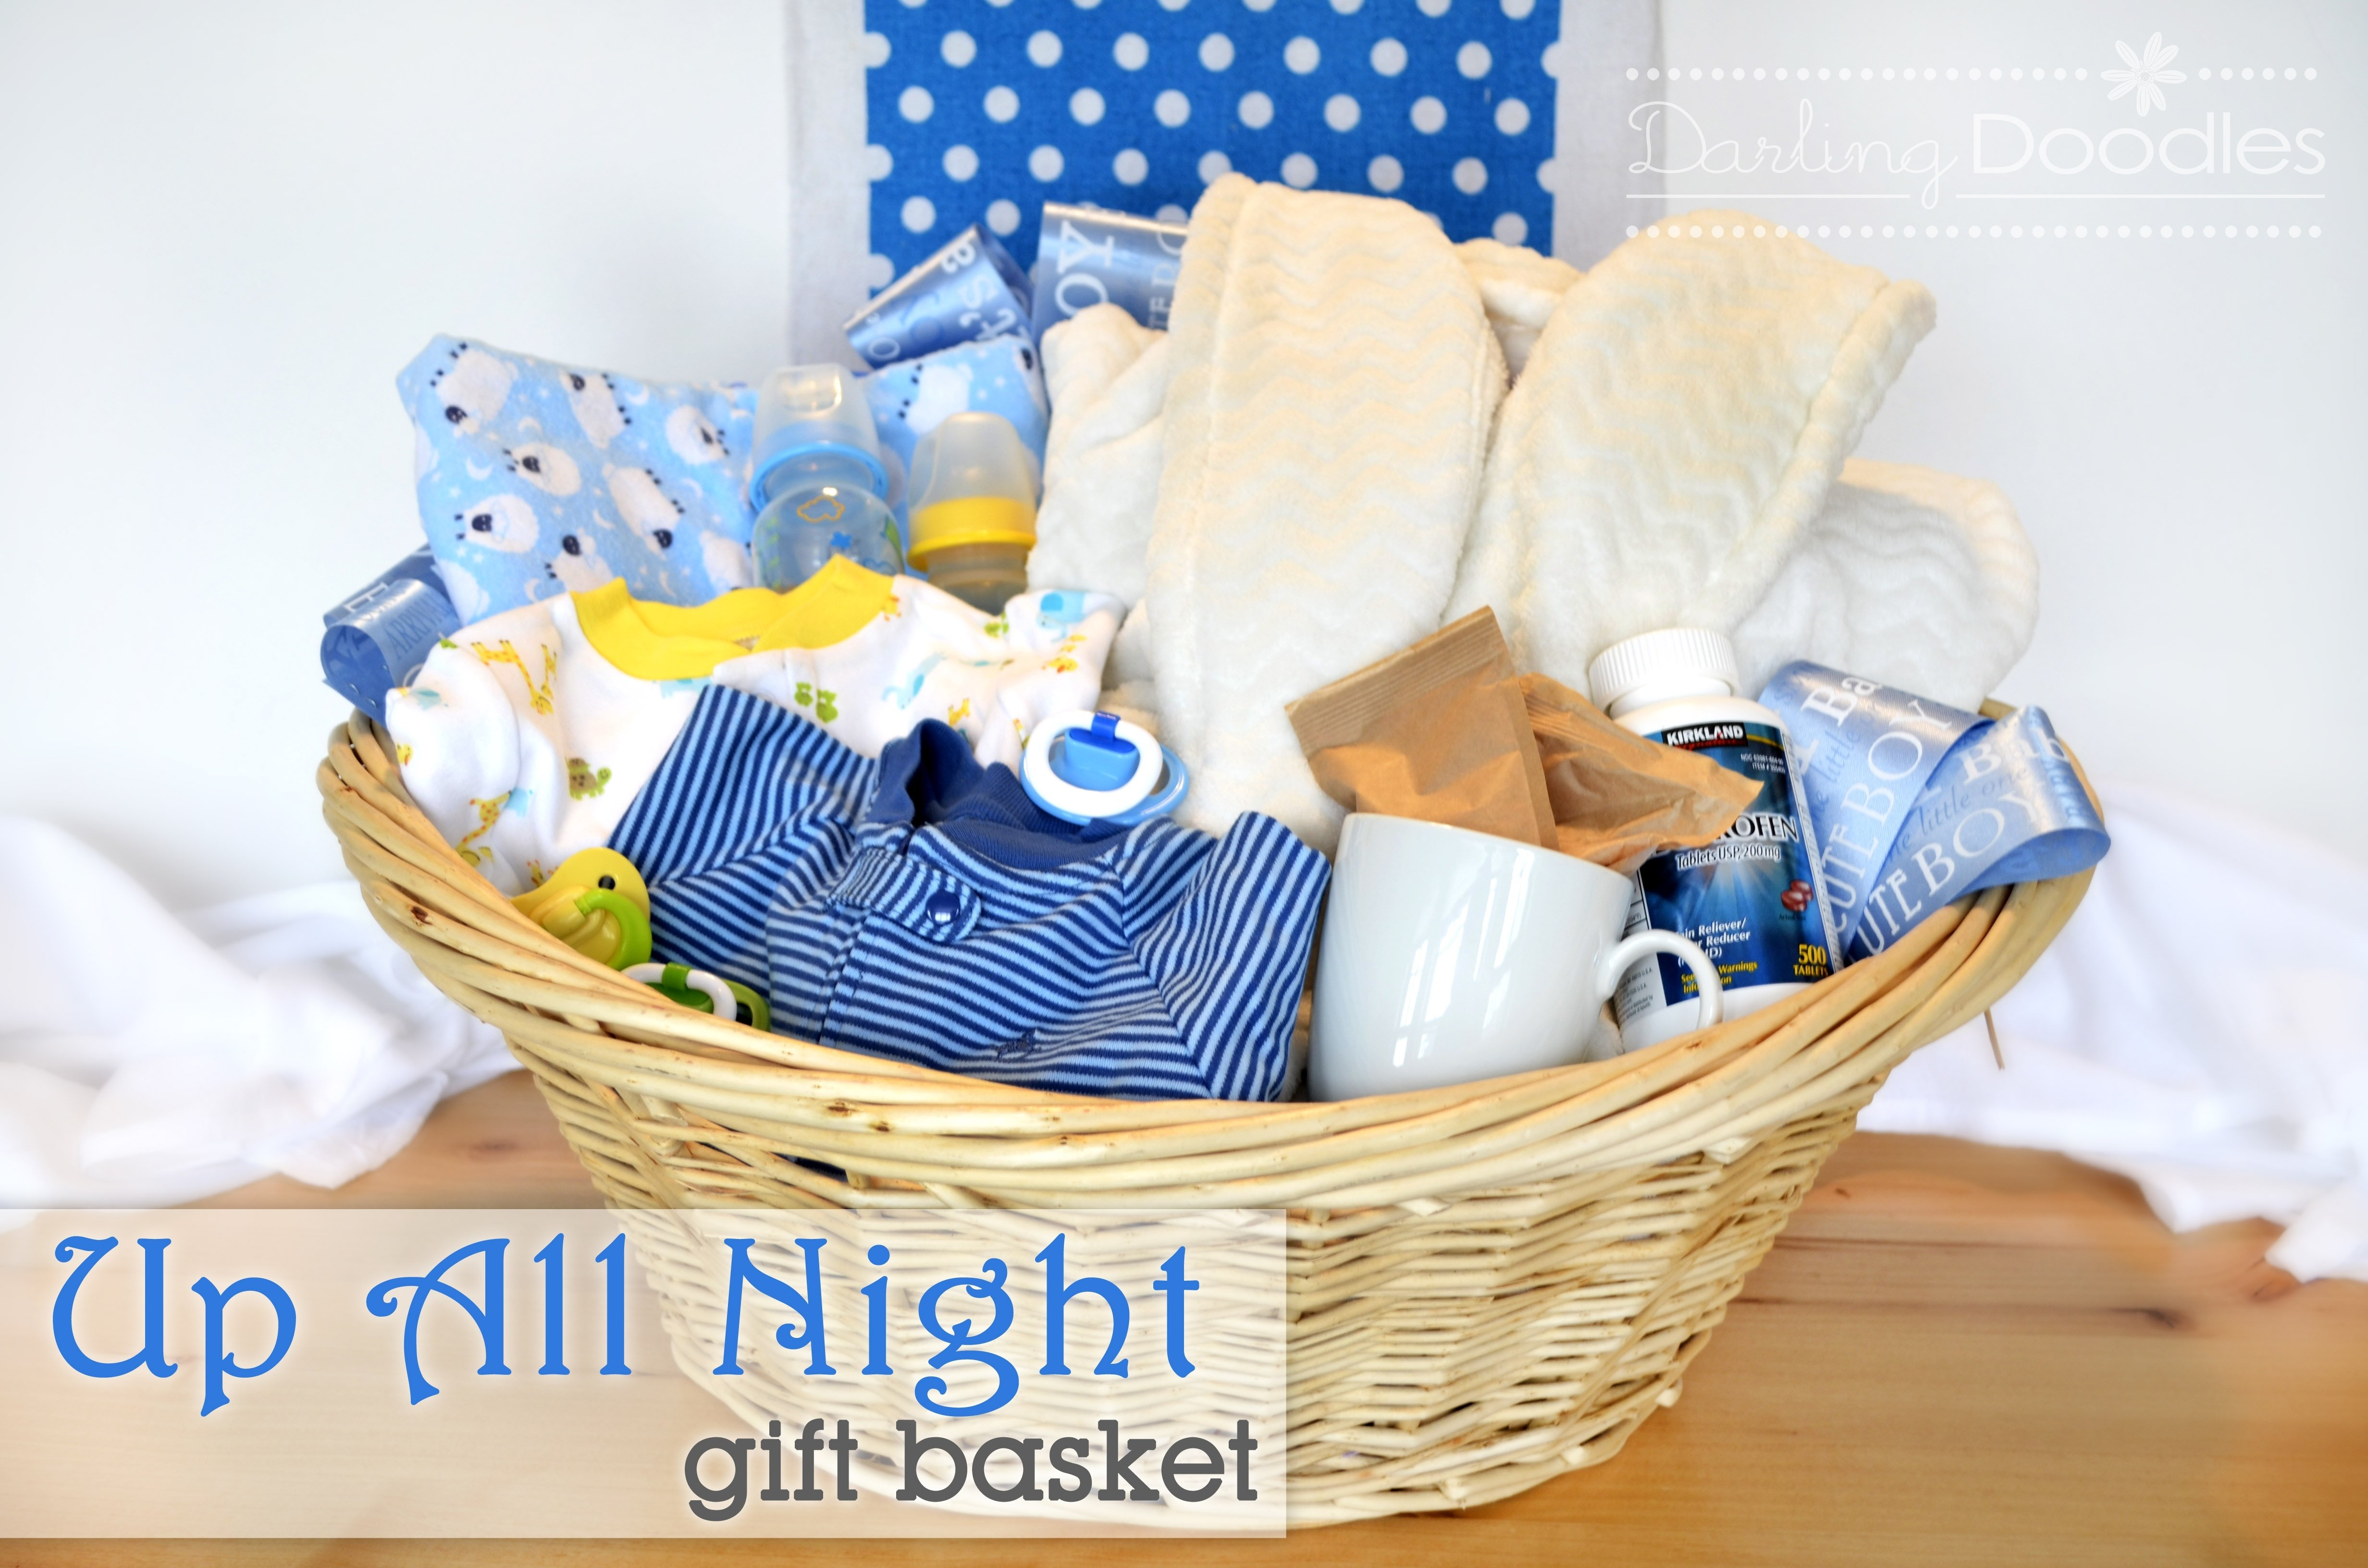 10 Unique Mom To Be Gift Ideas ideas baby showers showerift basket coolifts to make creative forirl